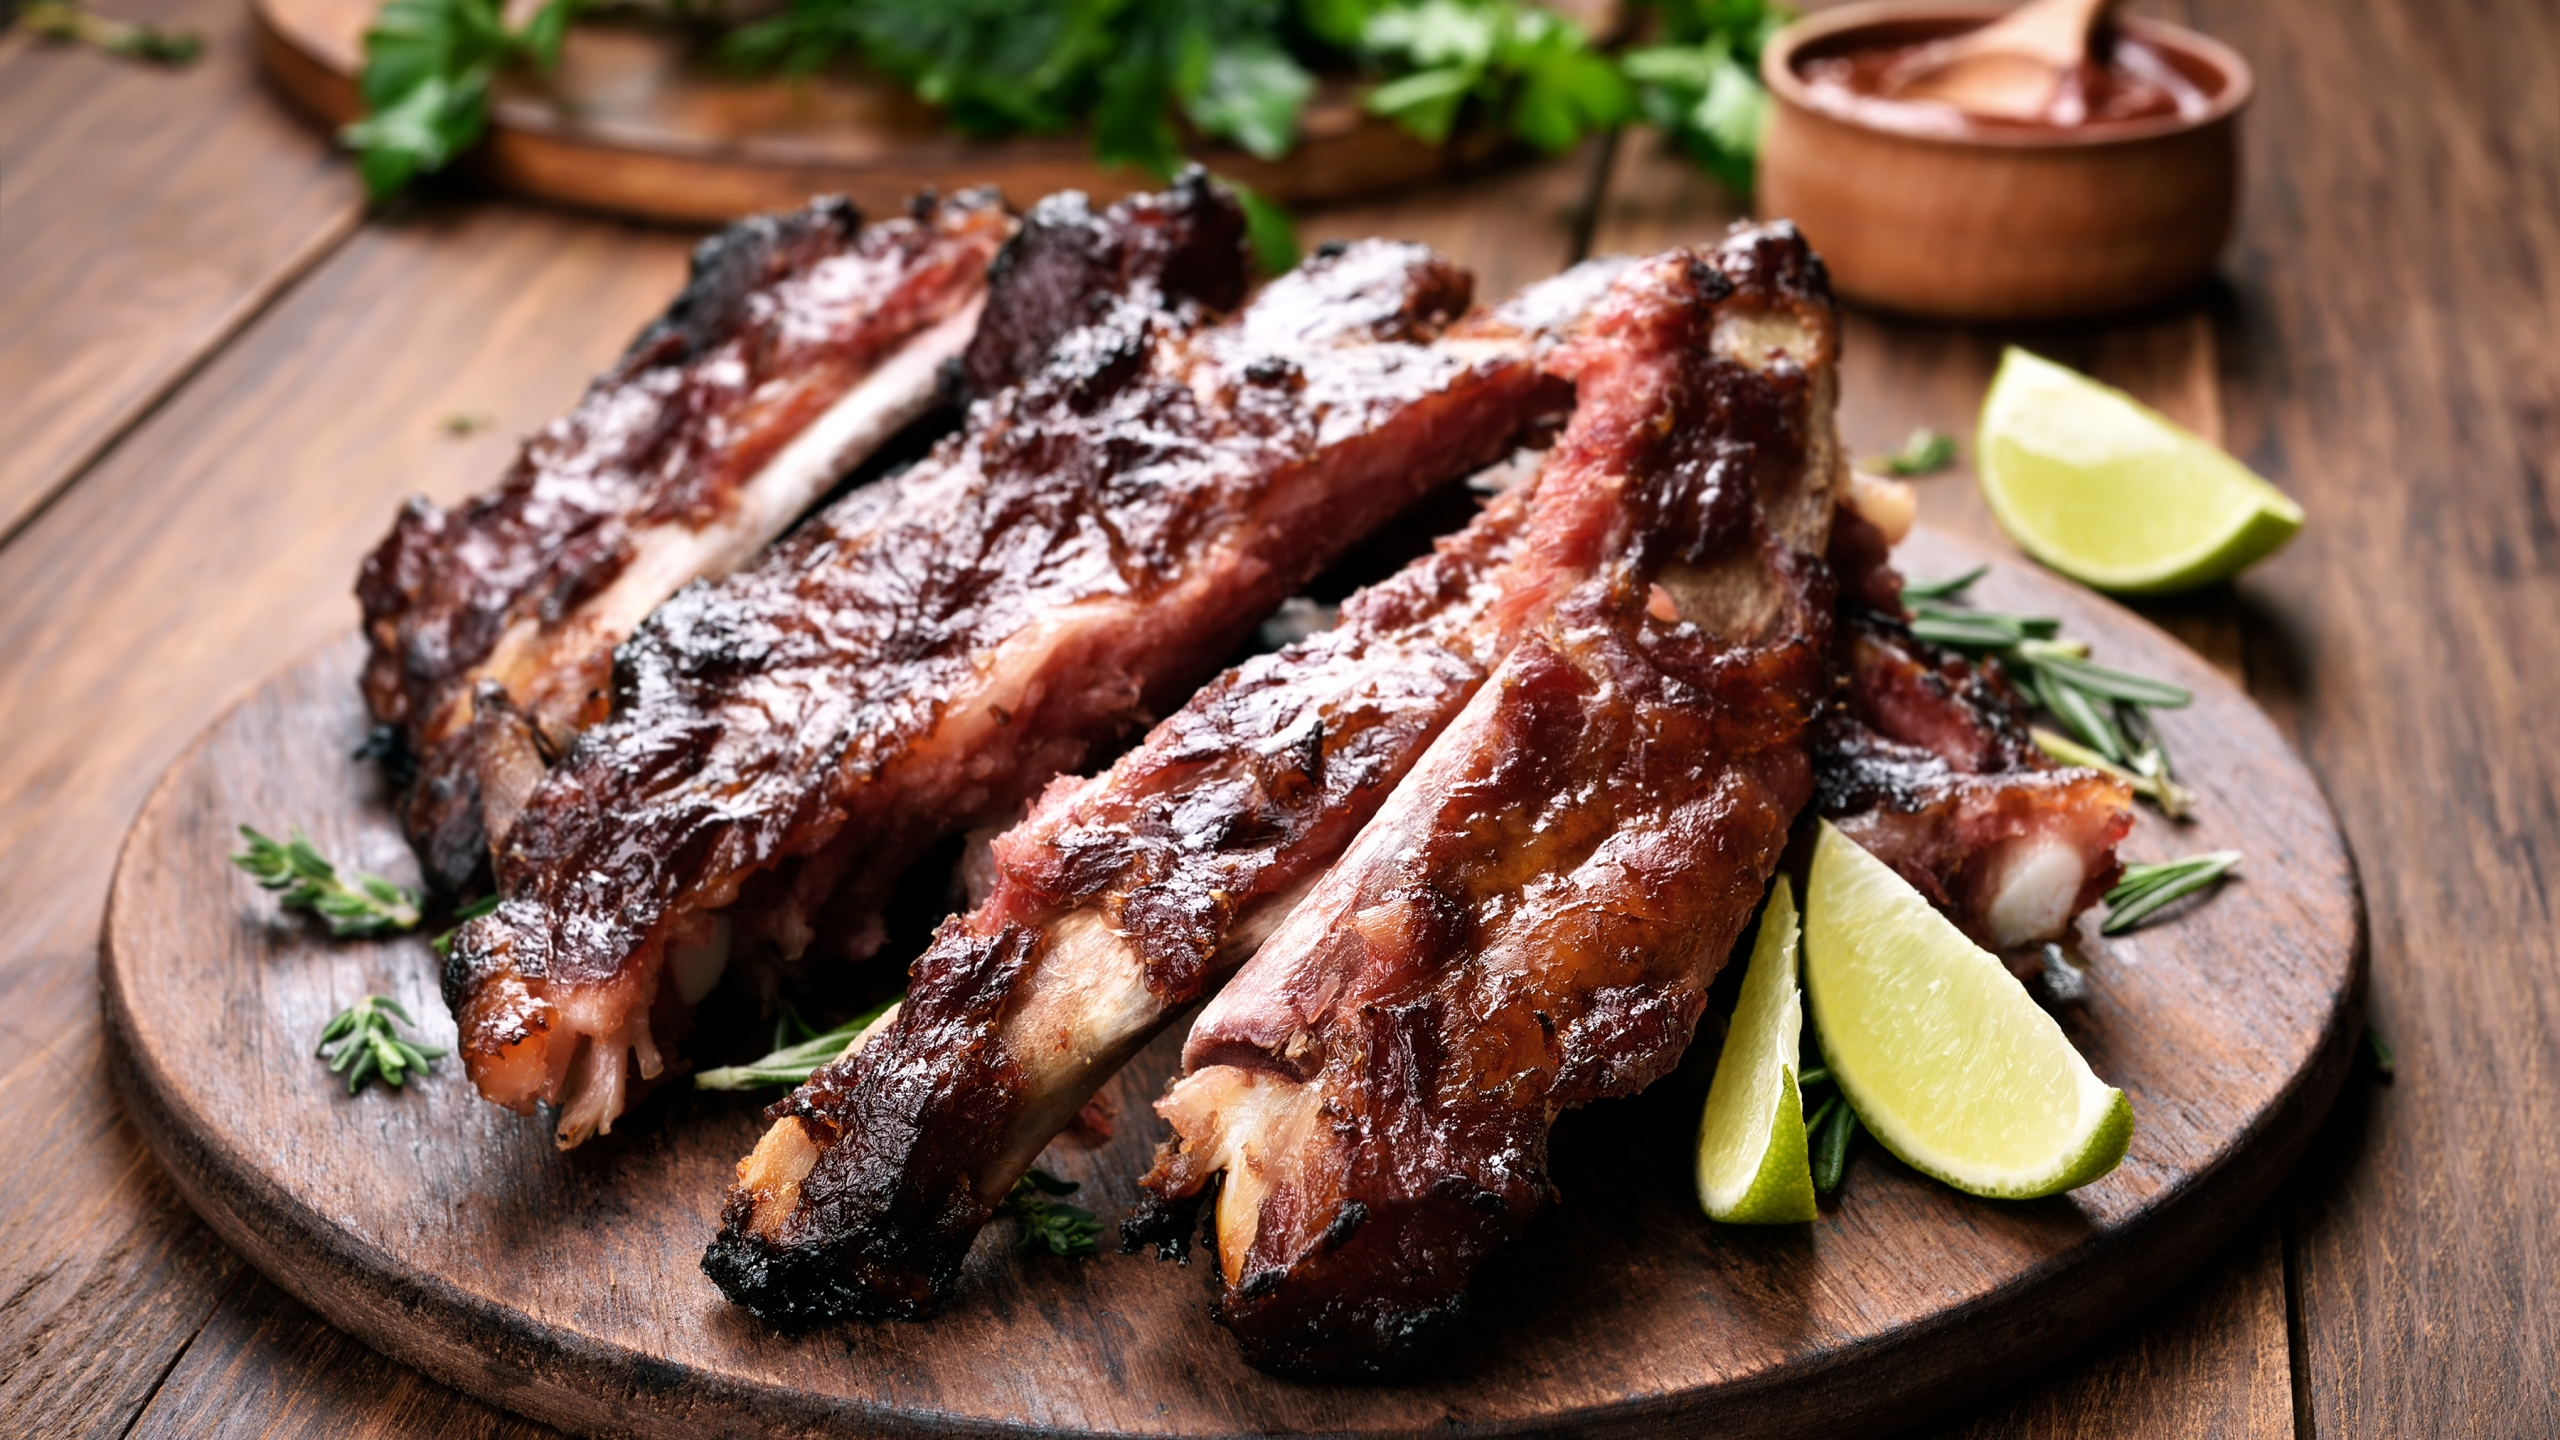 Grilled barbecue pork ribs on wooden board. (Credit: iStock / Getty Images Plus)